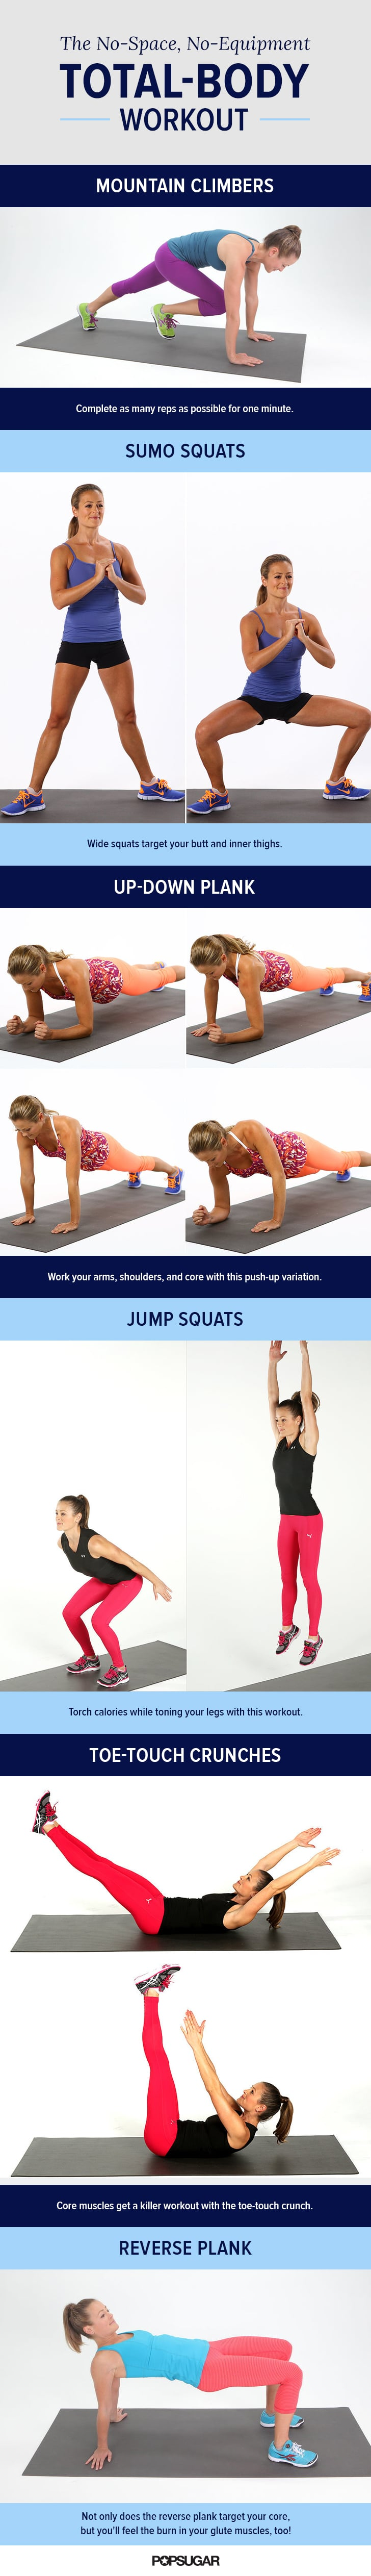 Total-Body, No-Equipment Workout